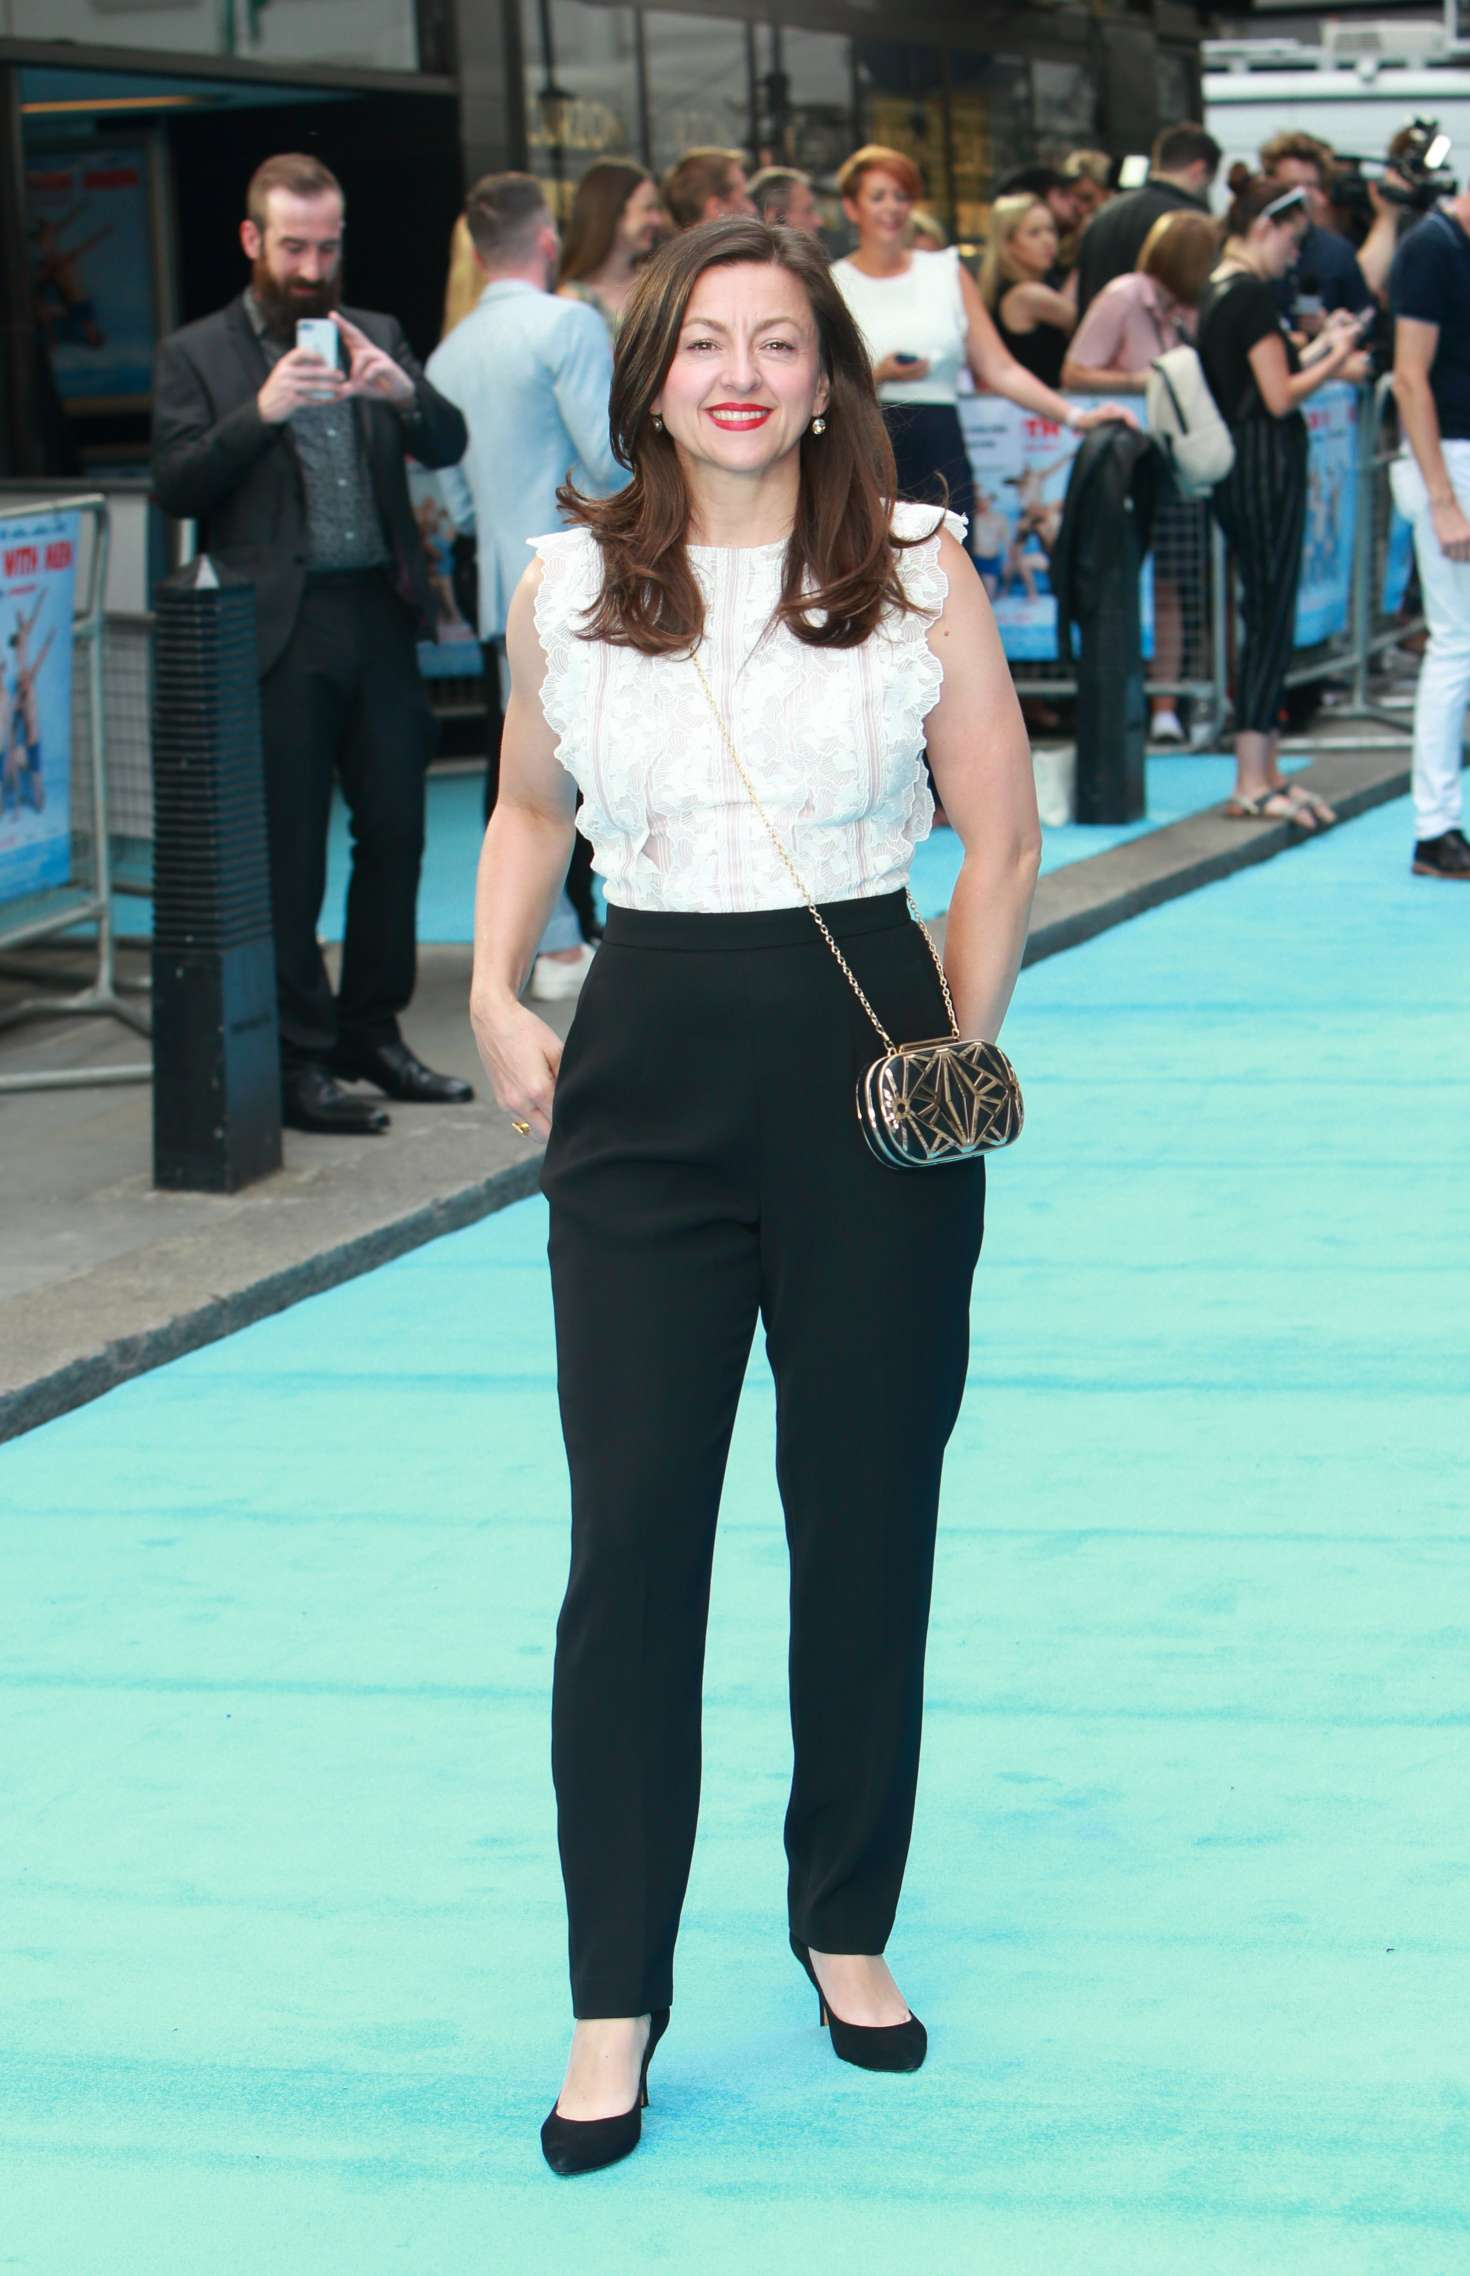 JO HARTLEY at Swimming with Men Premiere in London 07/04